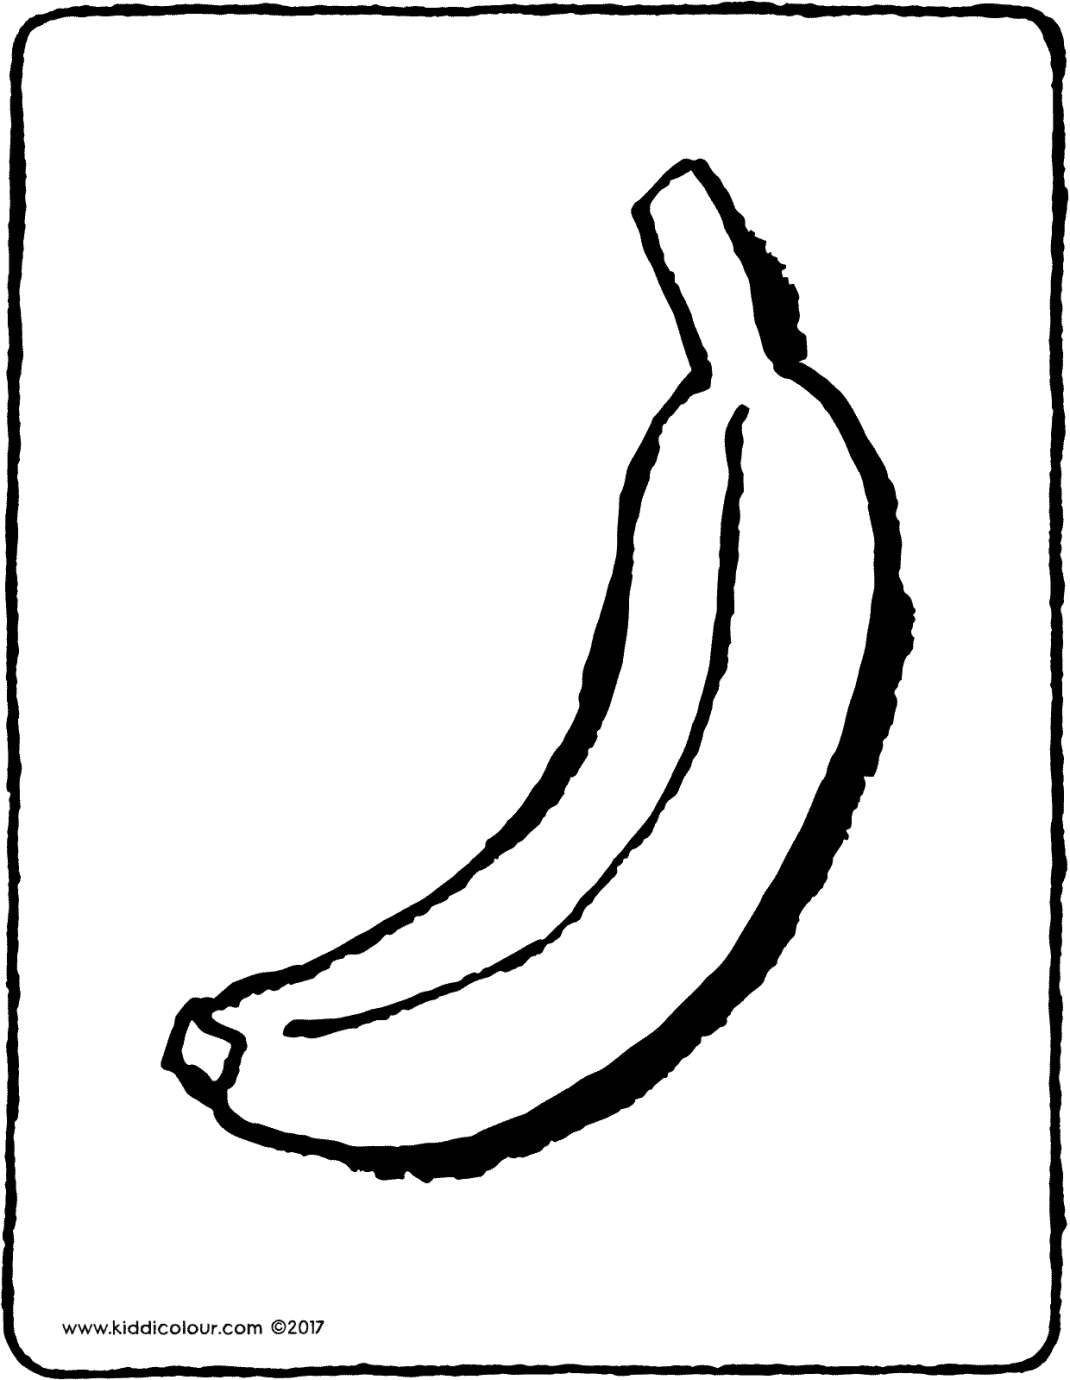 banana colouring page drawing picture 01V